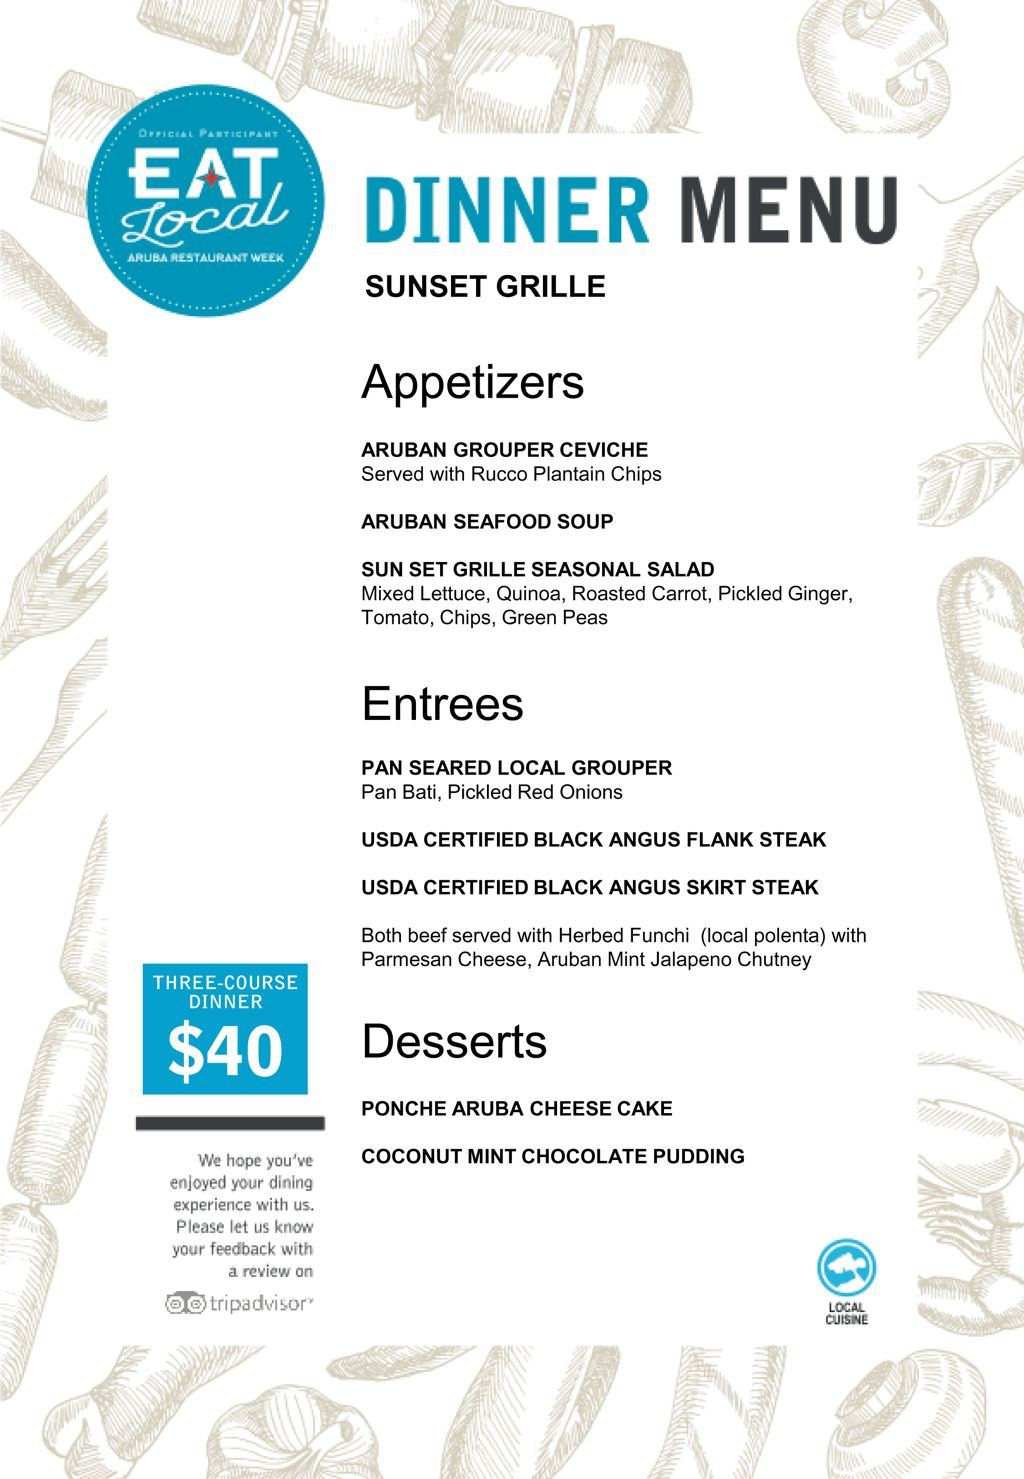 Sunset Grille - Eat Local 2017